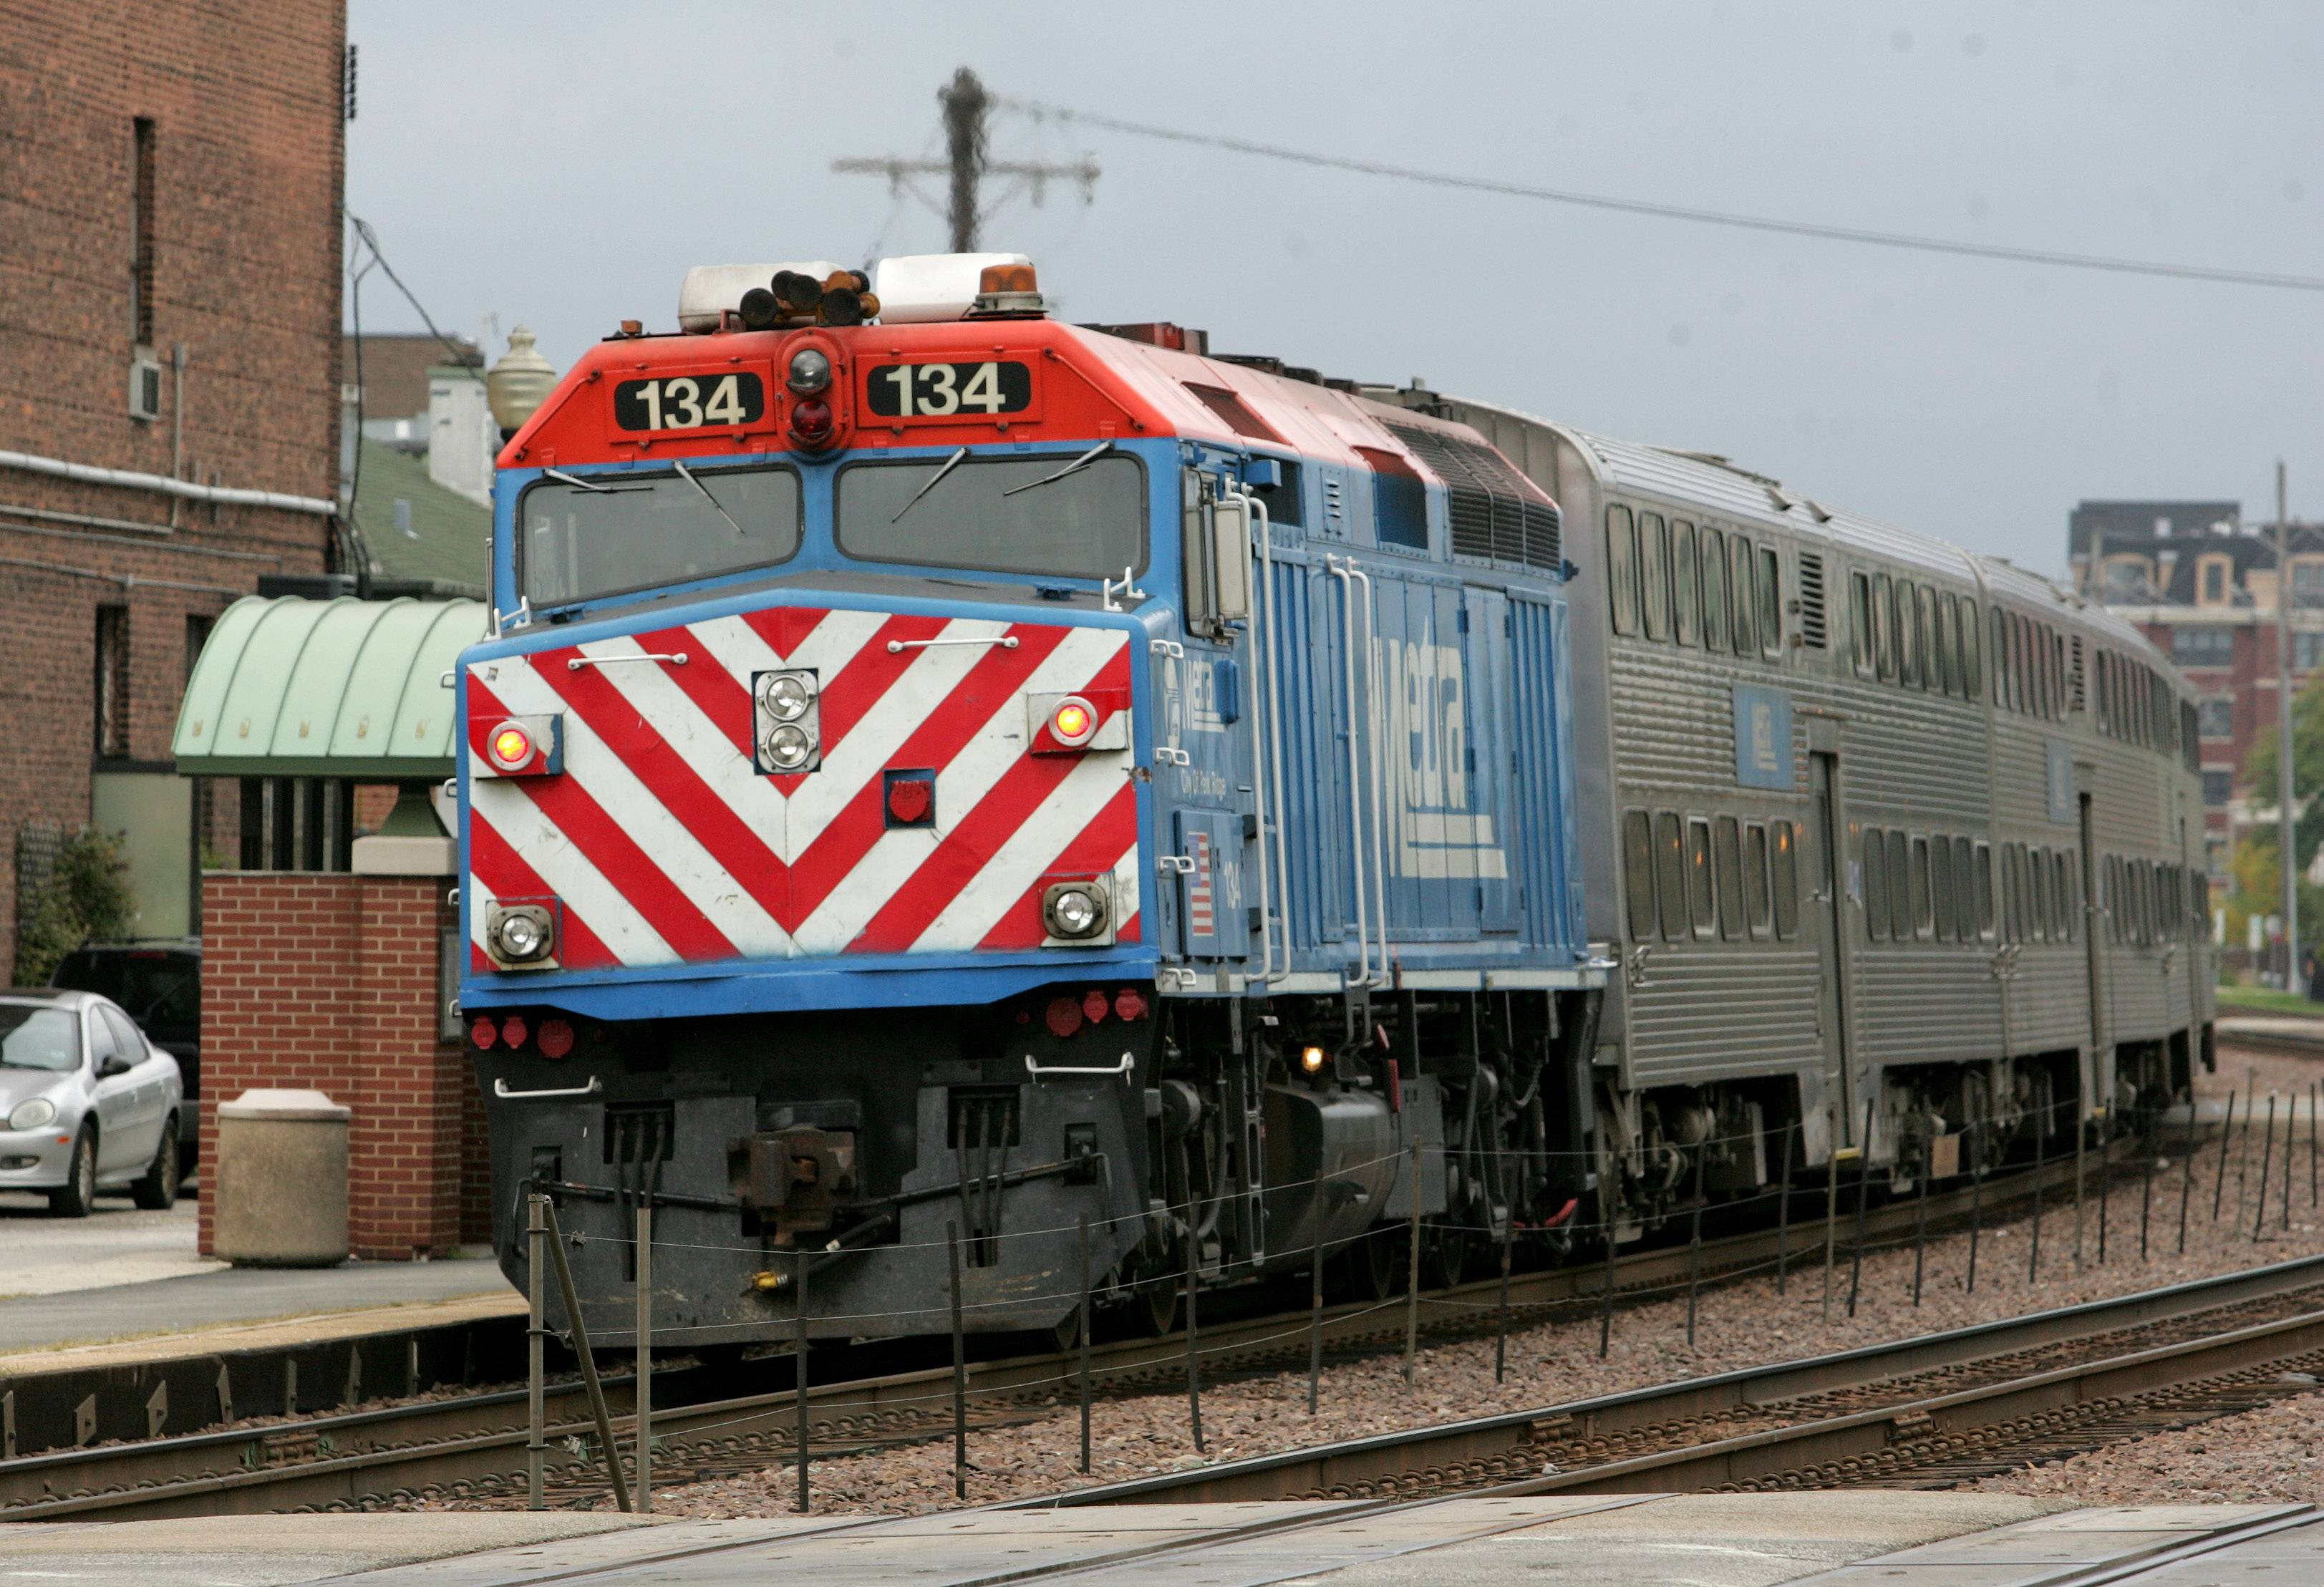 Metra looking to buy used locomotives to help reduce delays